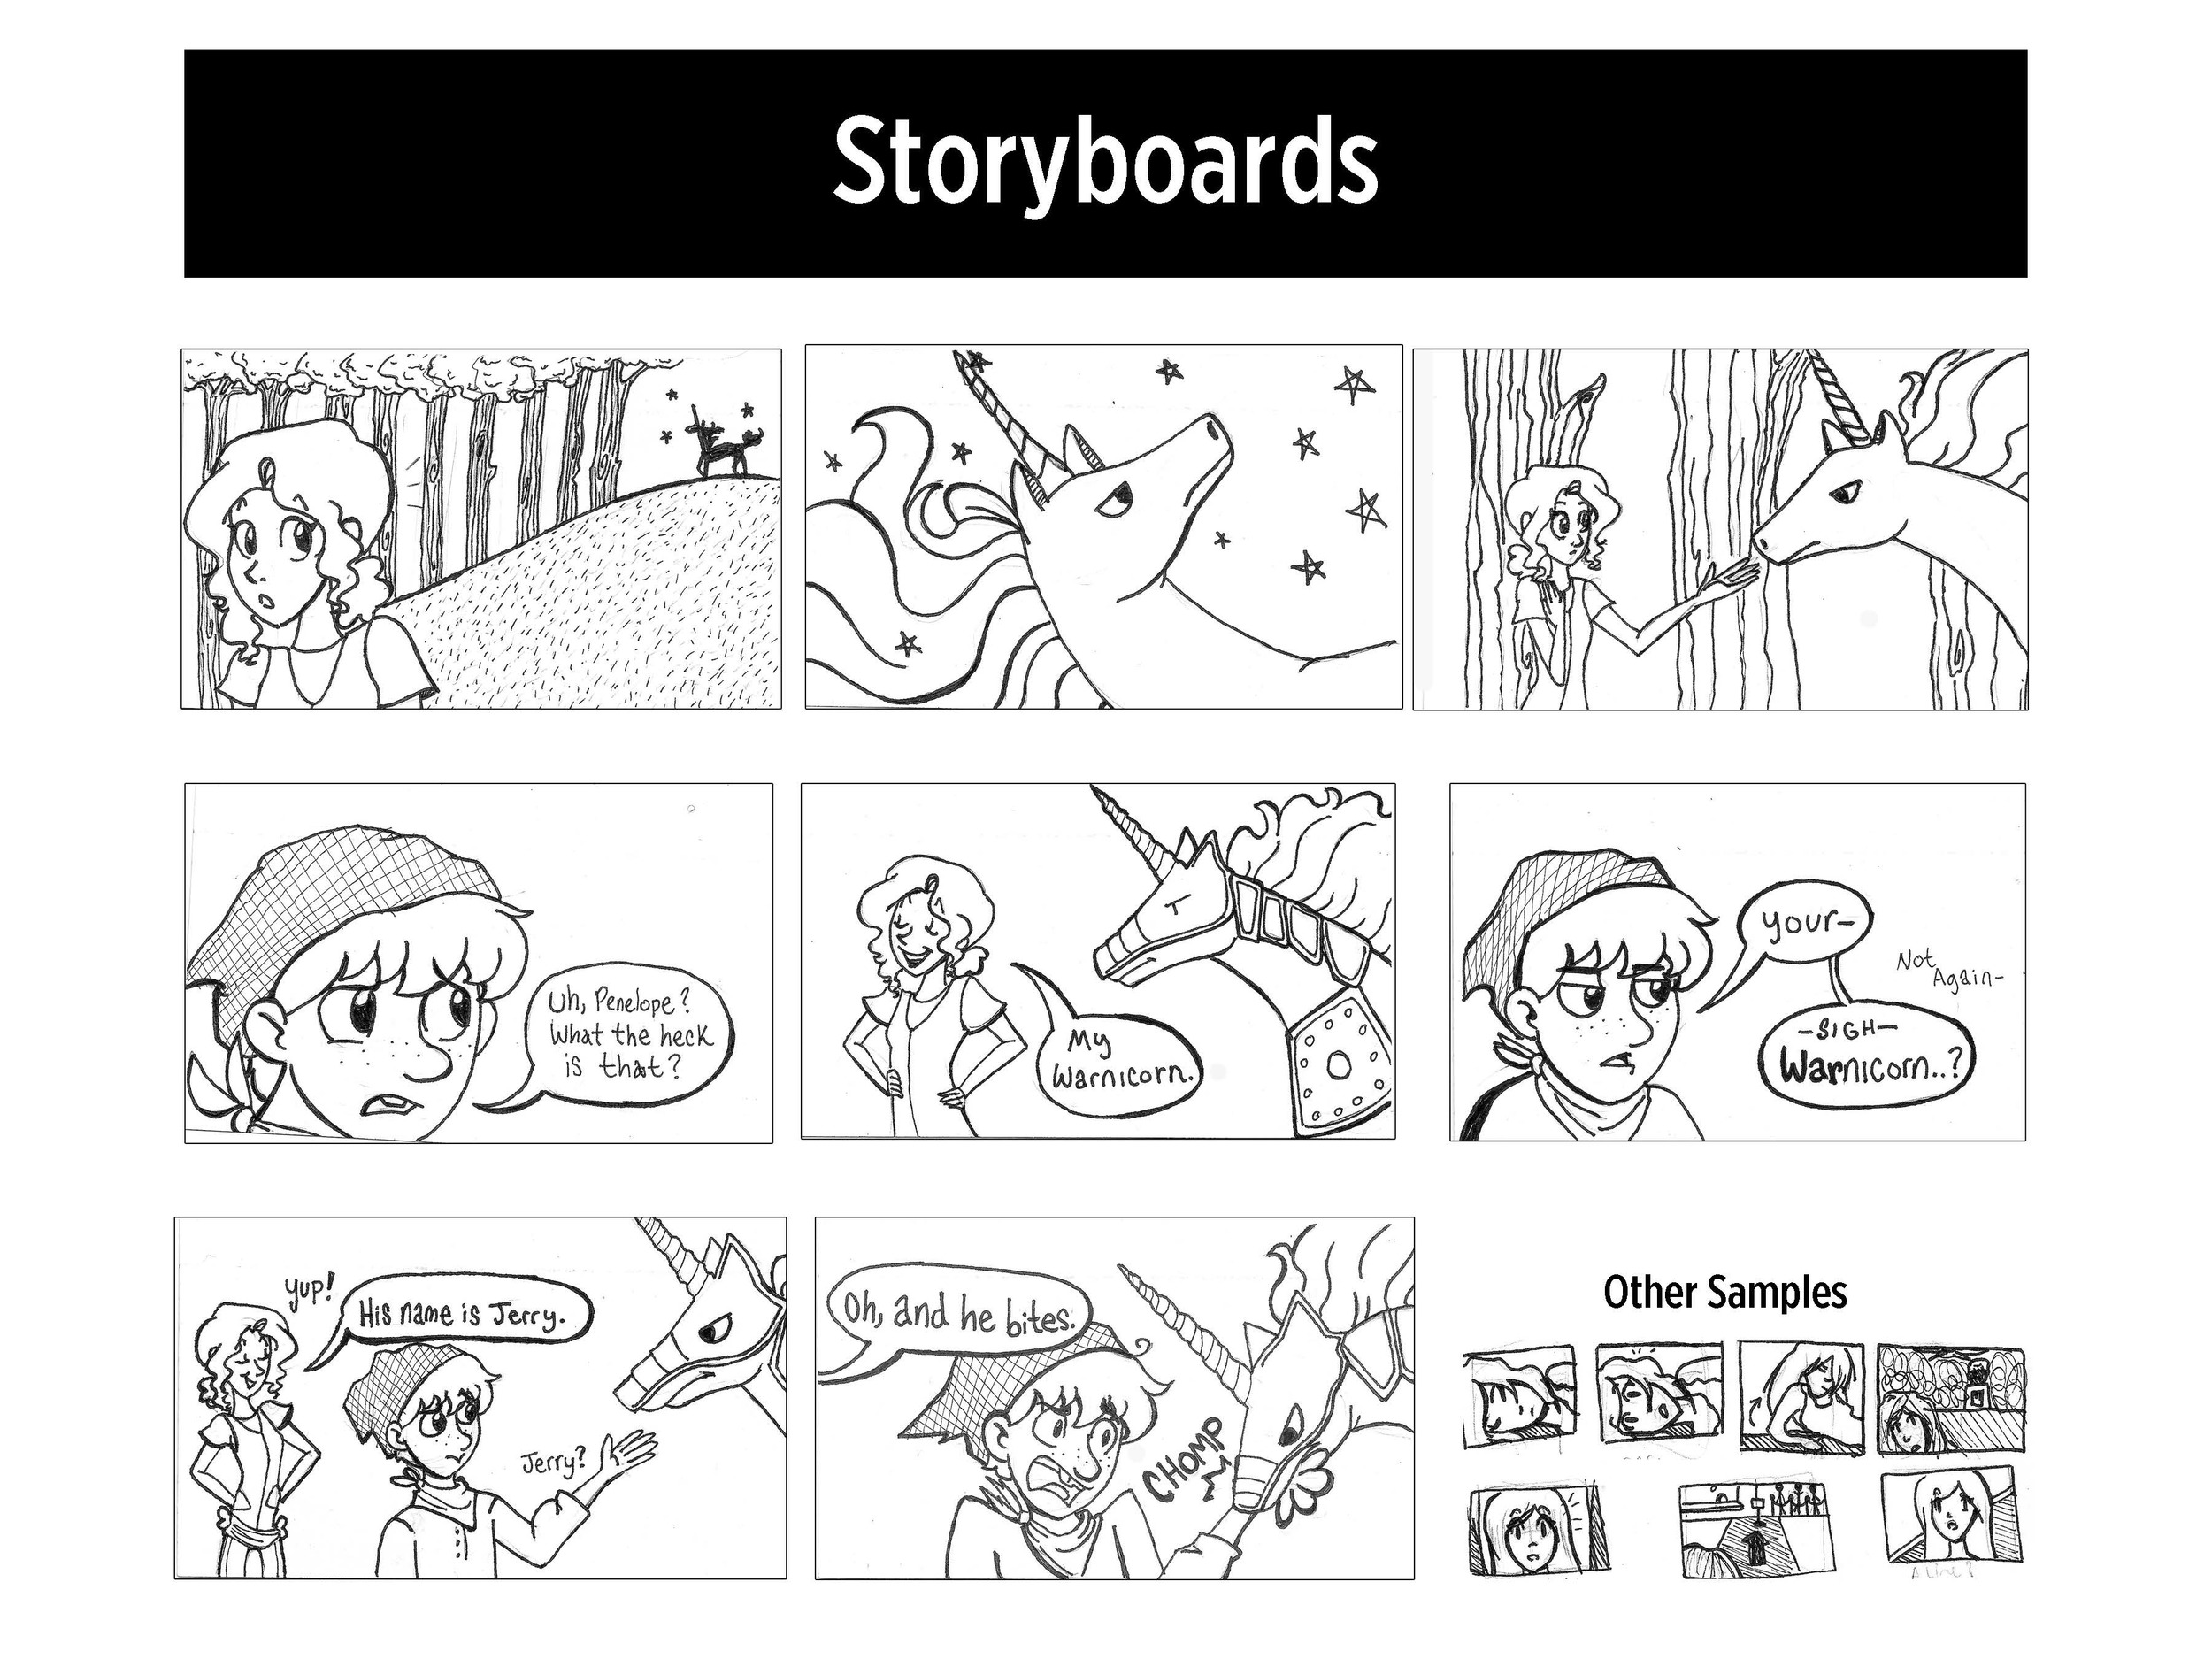 Storyboarding examples of self created stories Princess Penelope and Newly Deads.